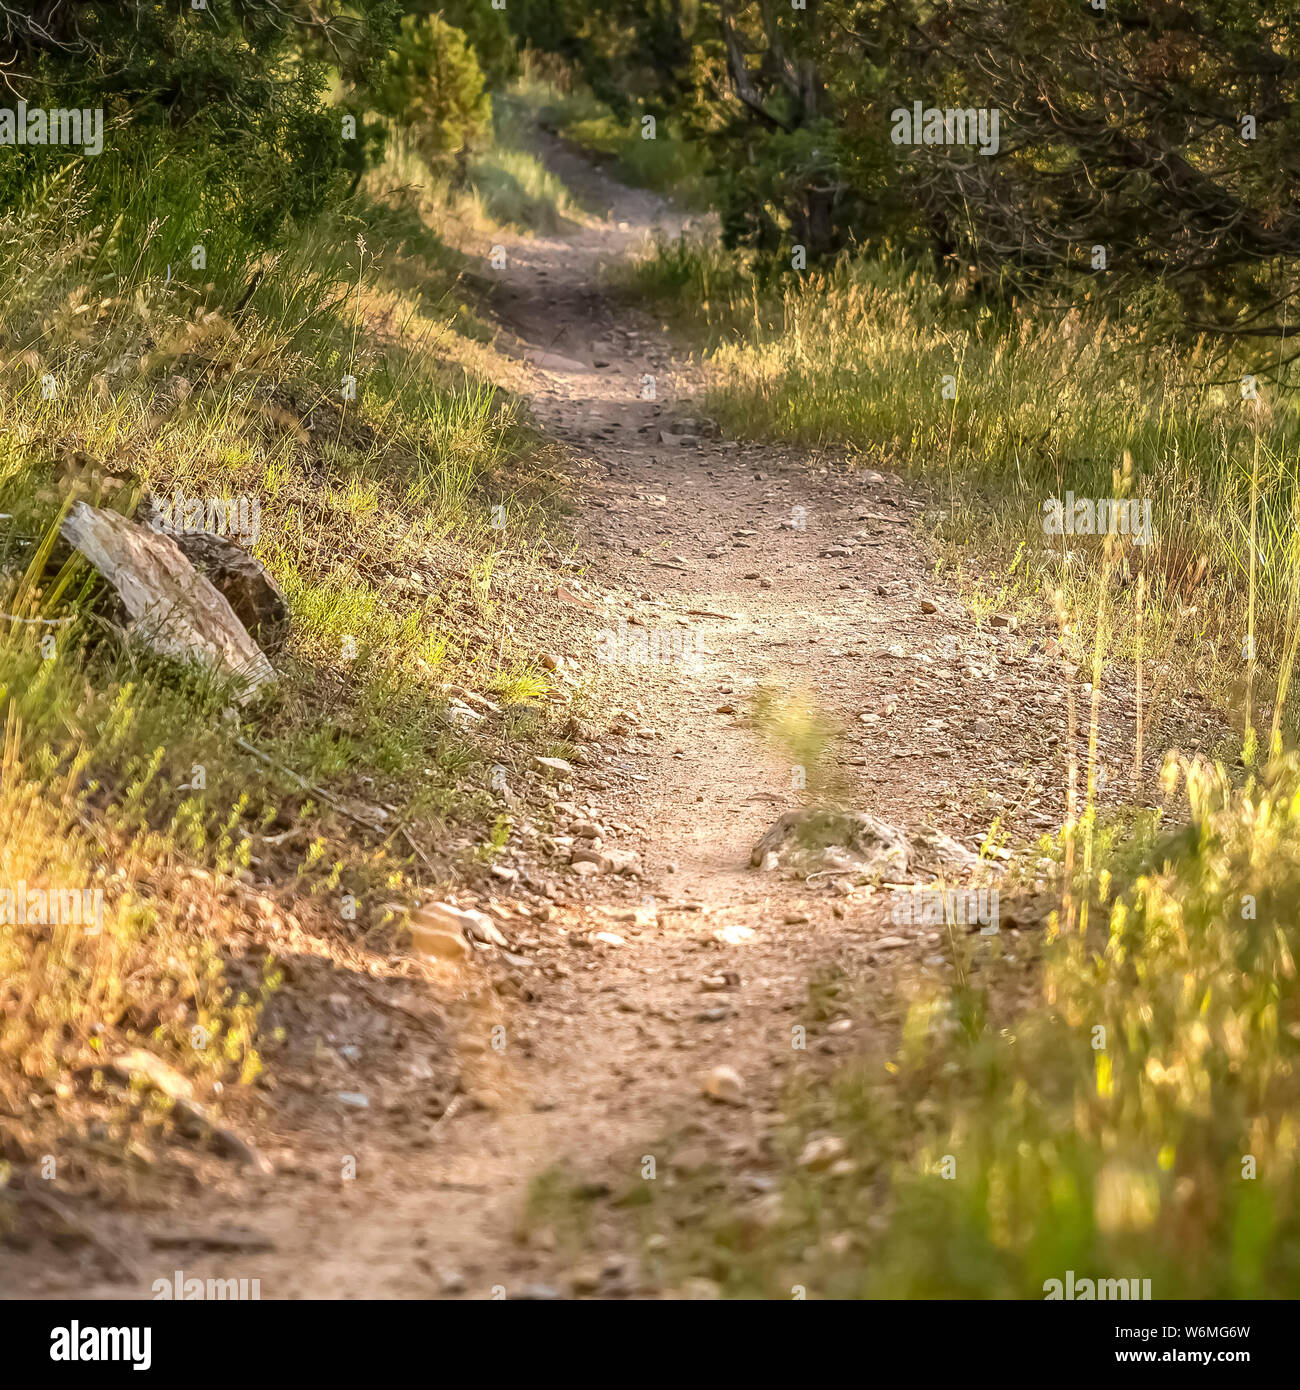 Square frame Close up of a sunlit and narrow dirt road in the forest on a sunny day Stock Photo